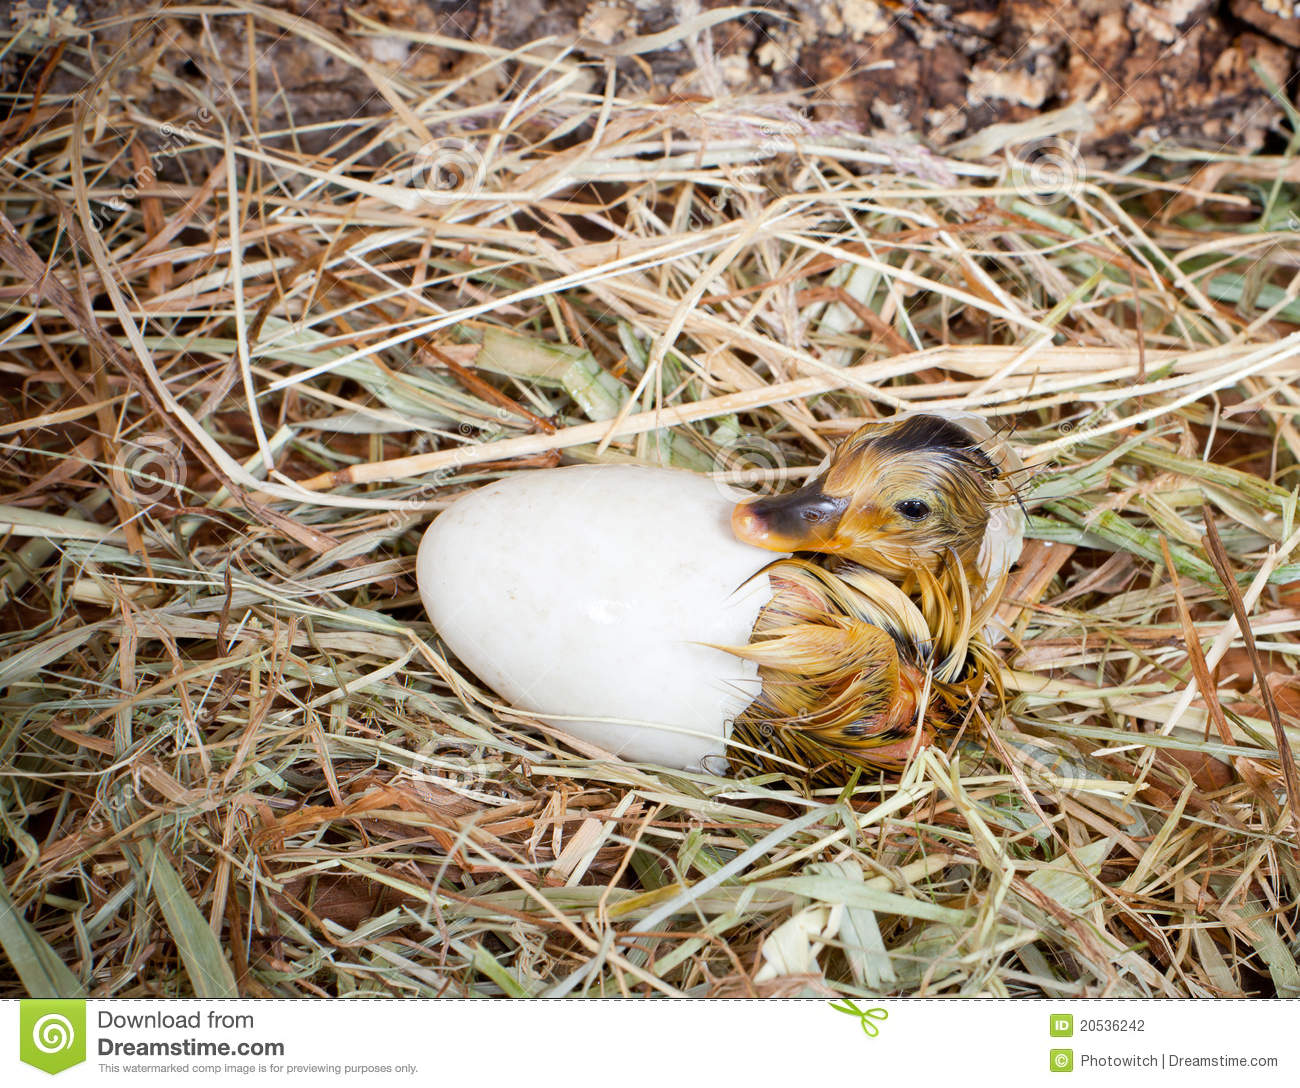 Hatching of a duckling